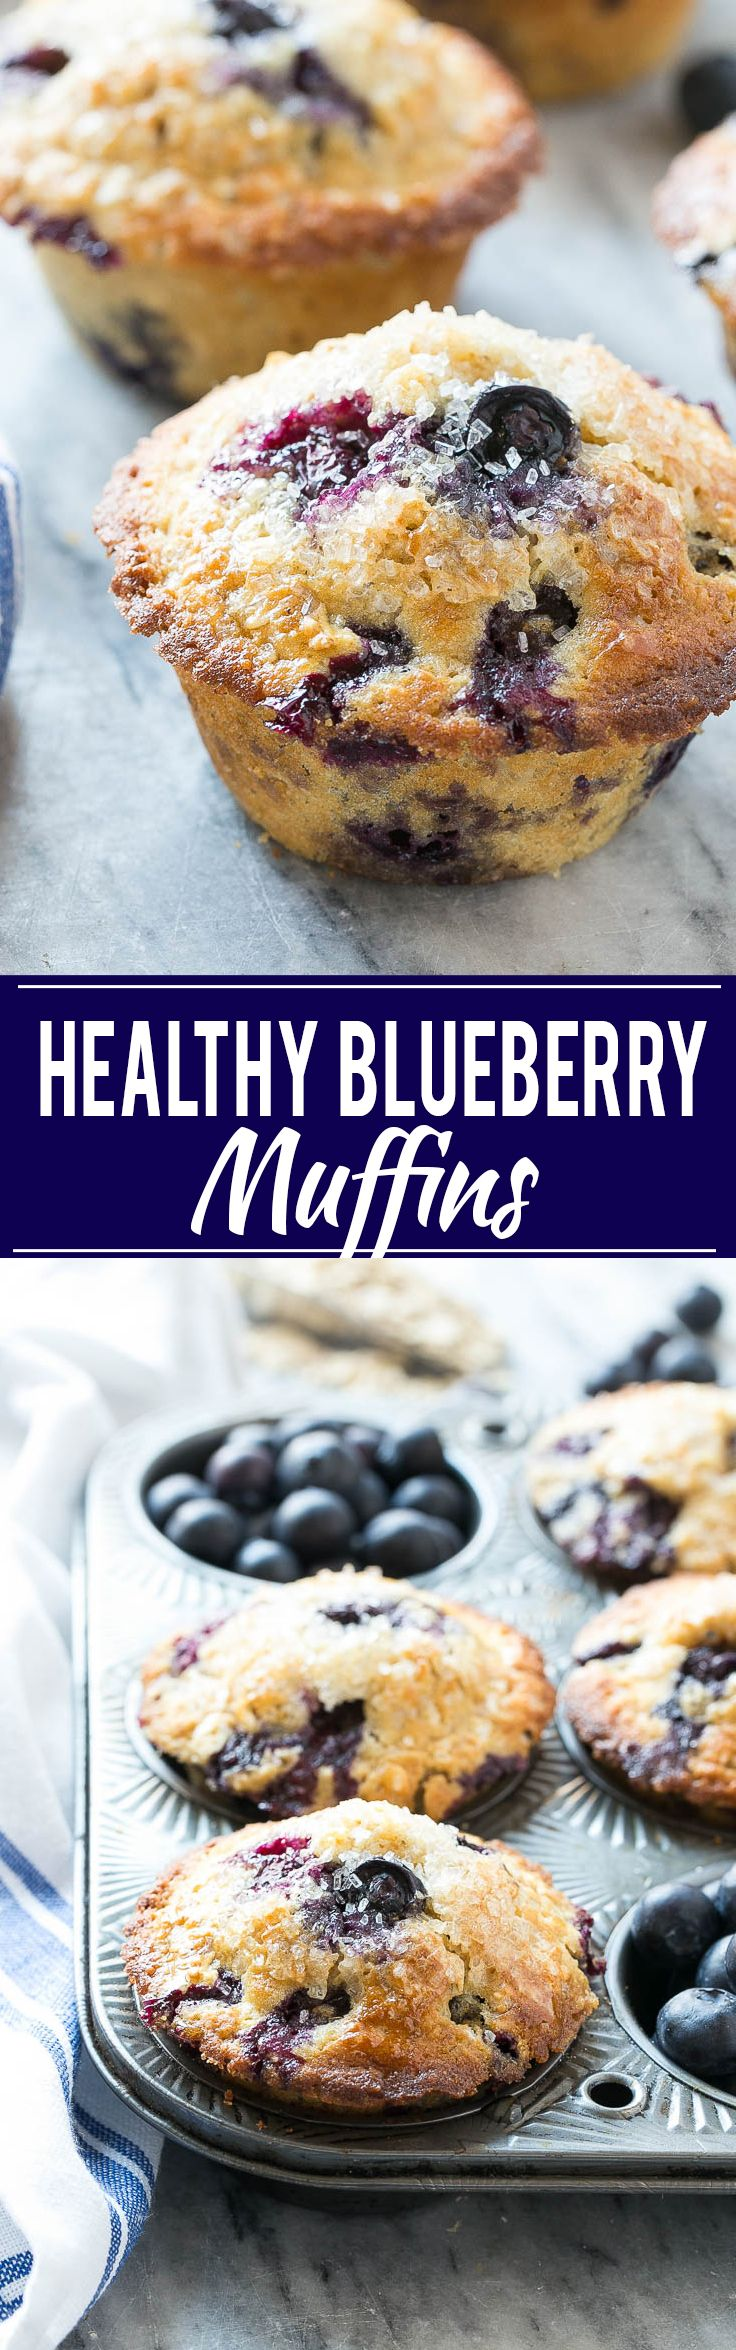 These healthy blueberry muffins are made with whole wheat flour and oatmeal for …